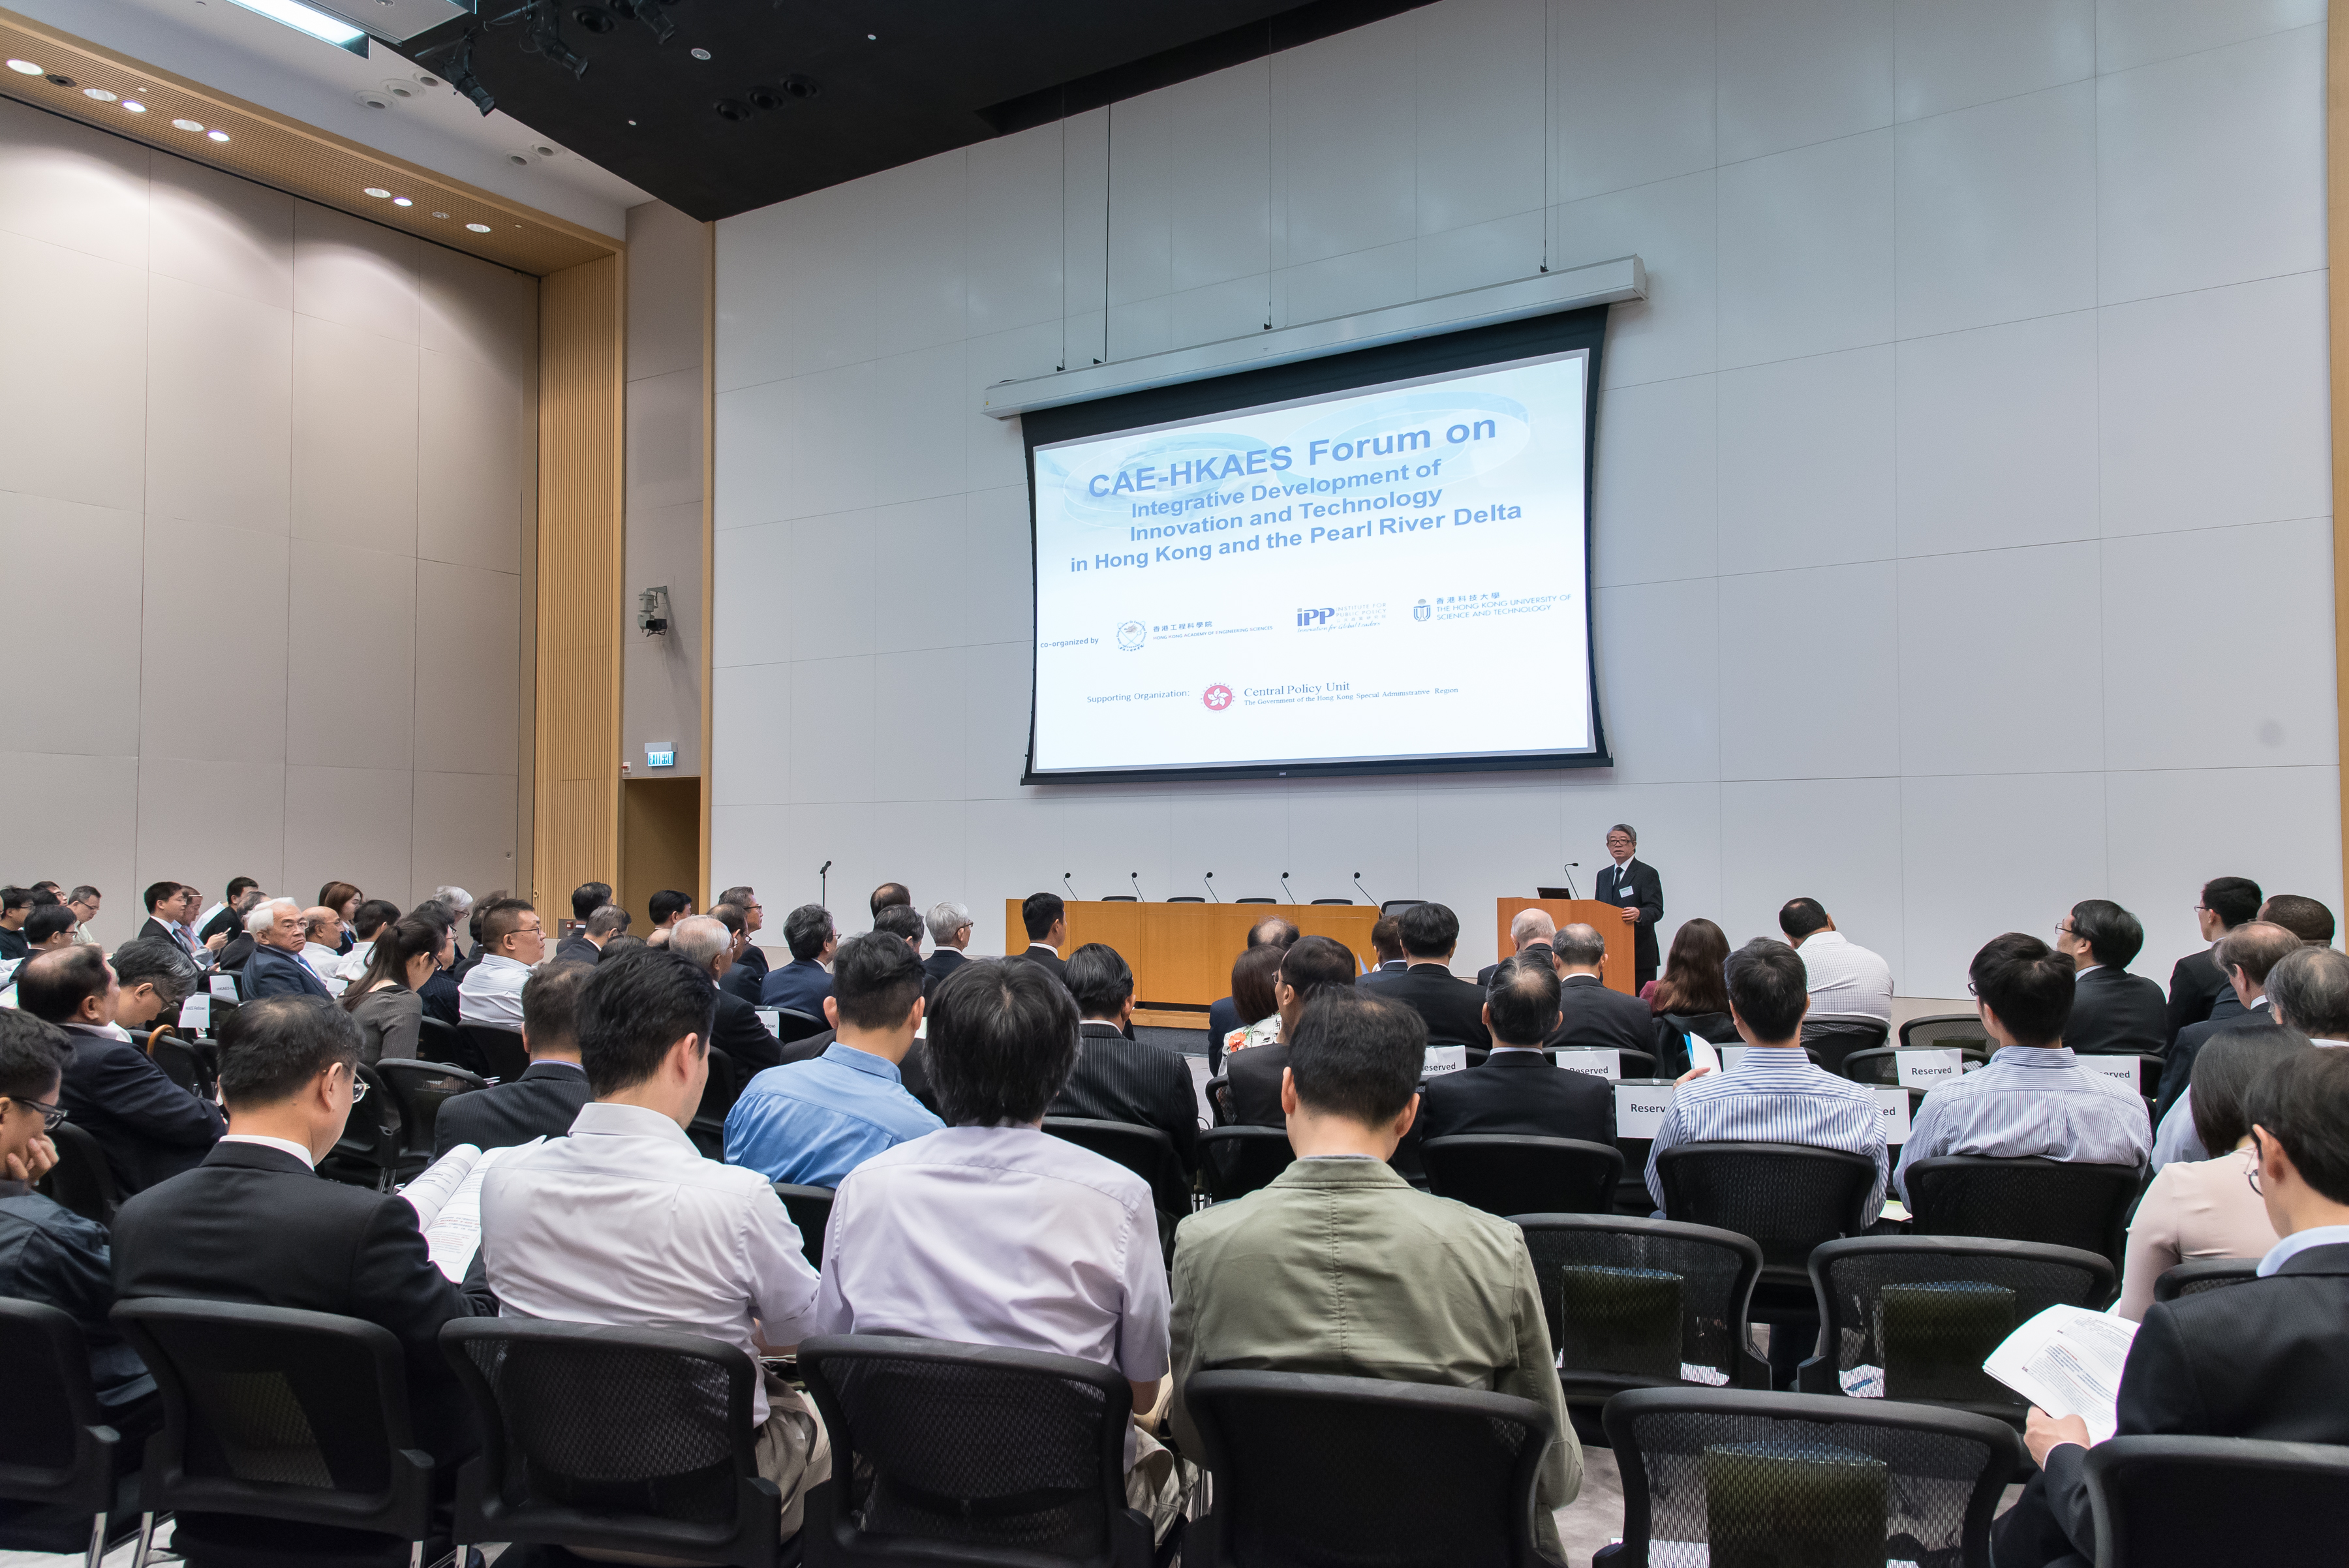 Hong Kong Academy of Engineering Sciences: CAE HKAES Forum